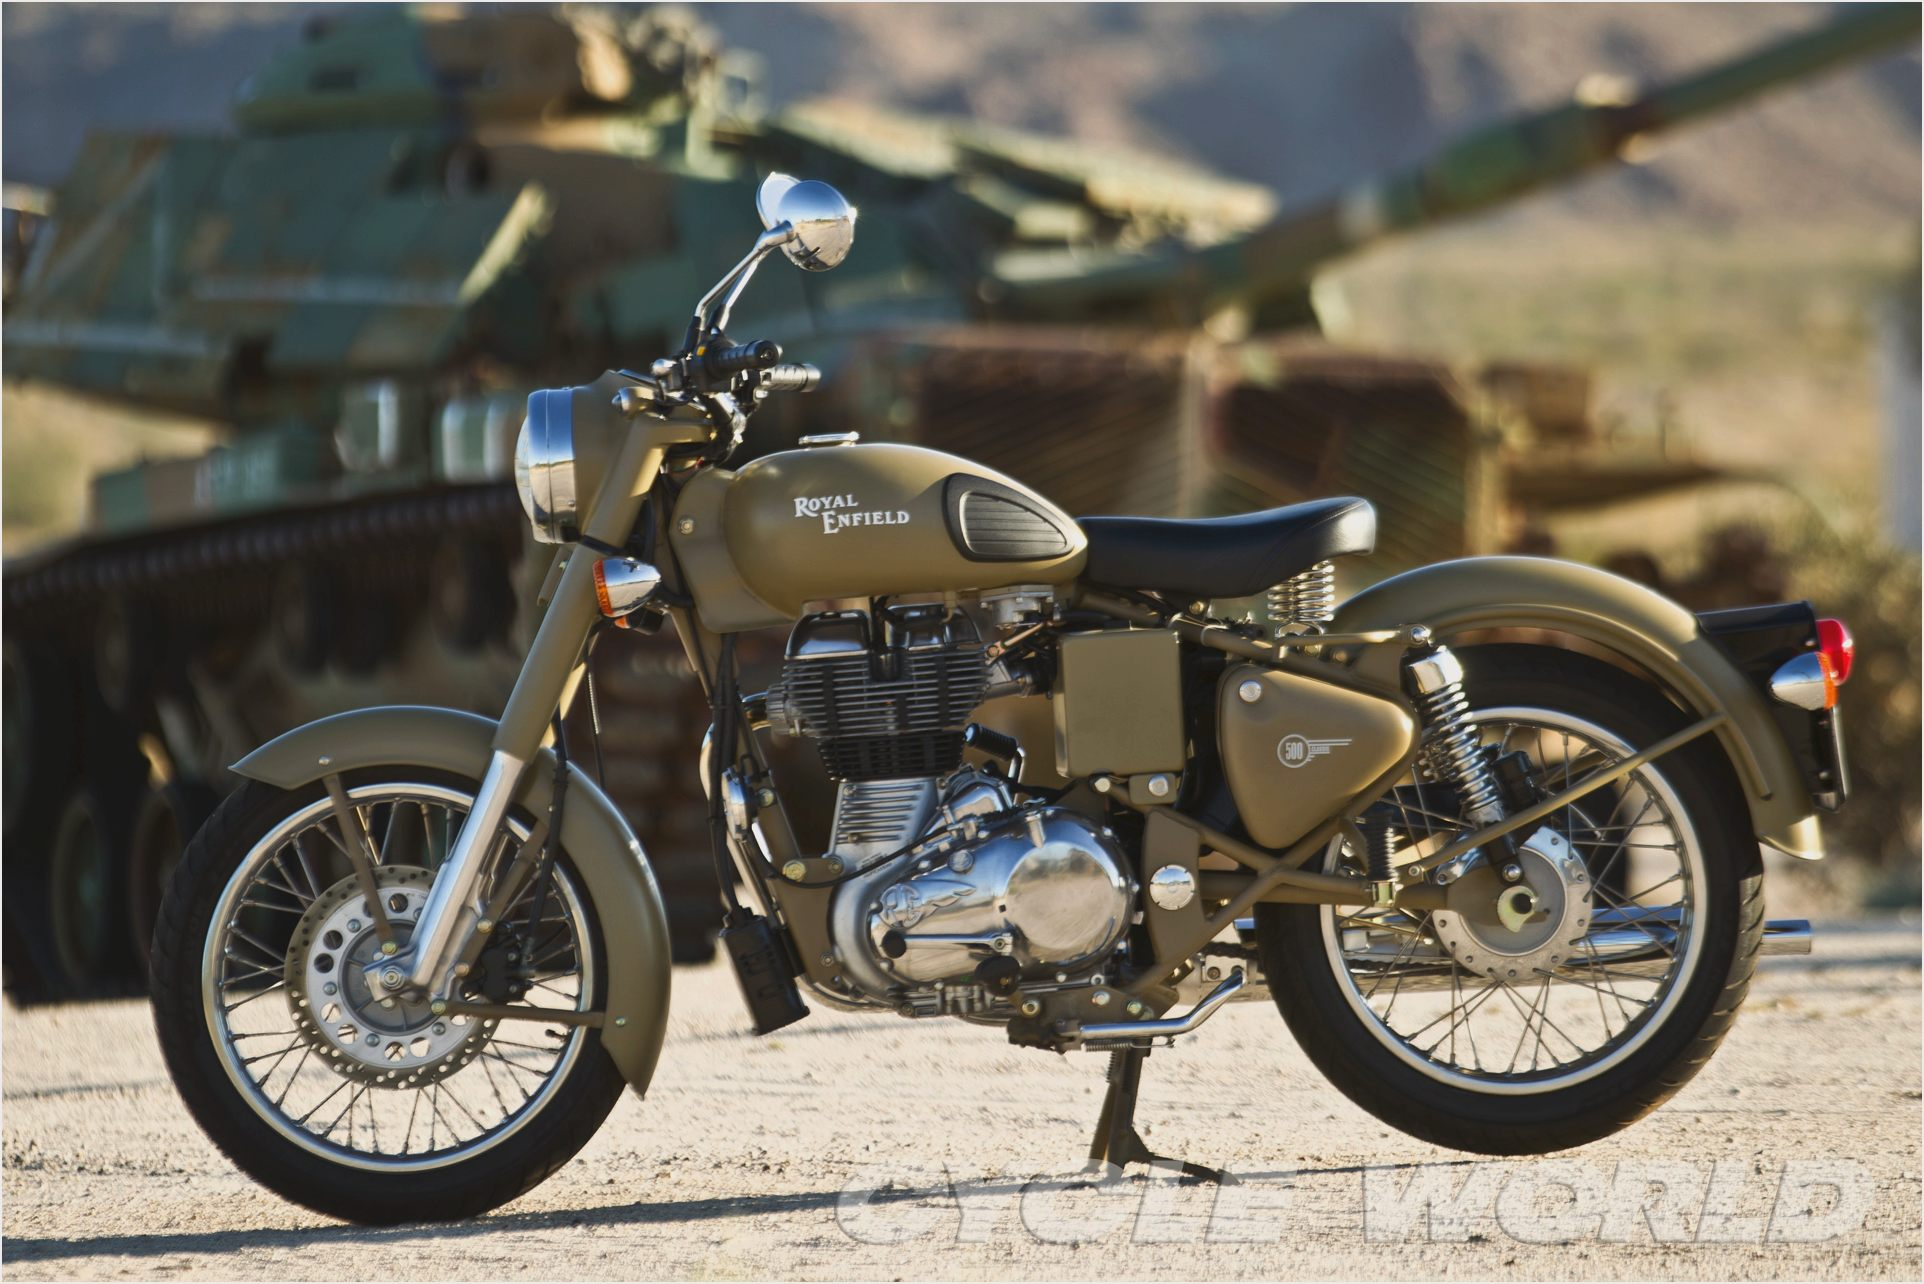 Royal Enfield Bullet 350 Classic 2005 images #123546